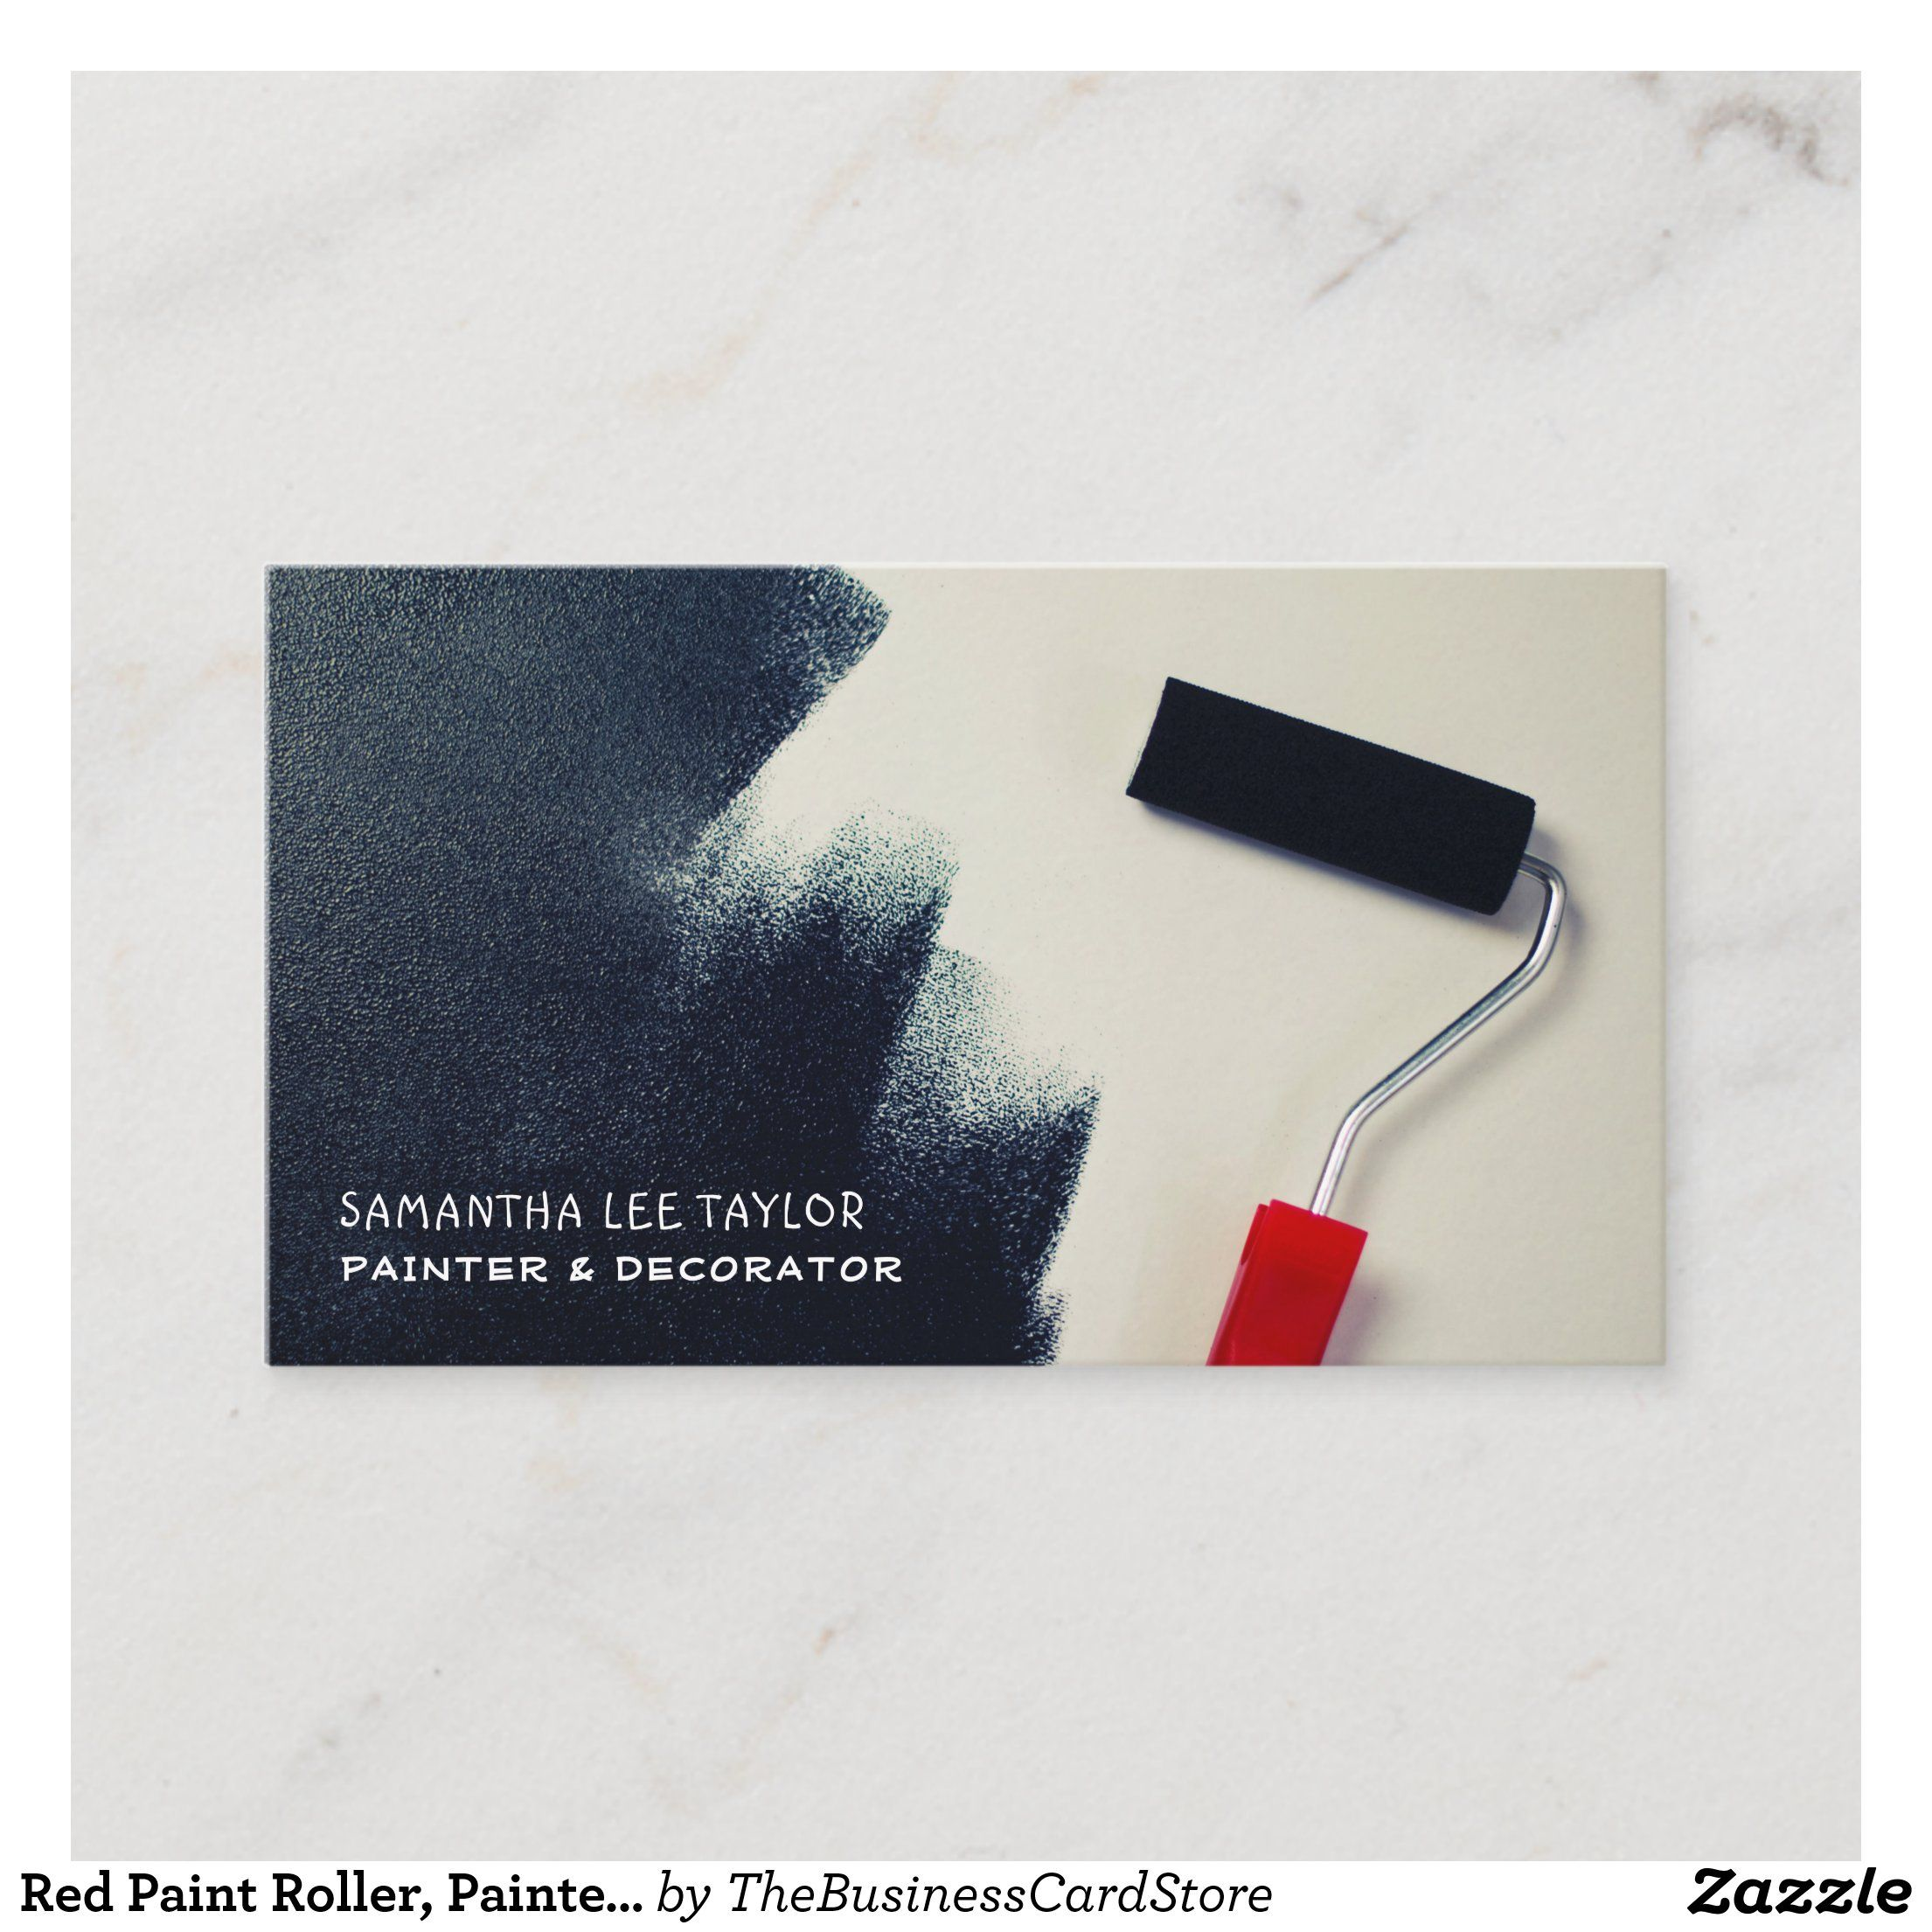 Red Paint Roller Painter Decorator Business Card Zazzle Com In 2021 Decorator Business Card Painter Business Card Painter And Decorator